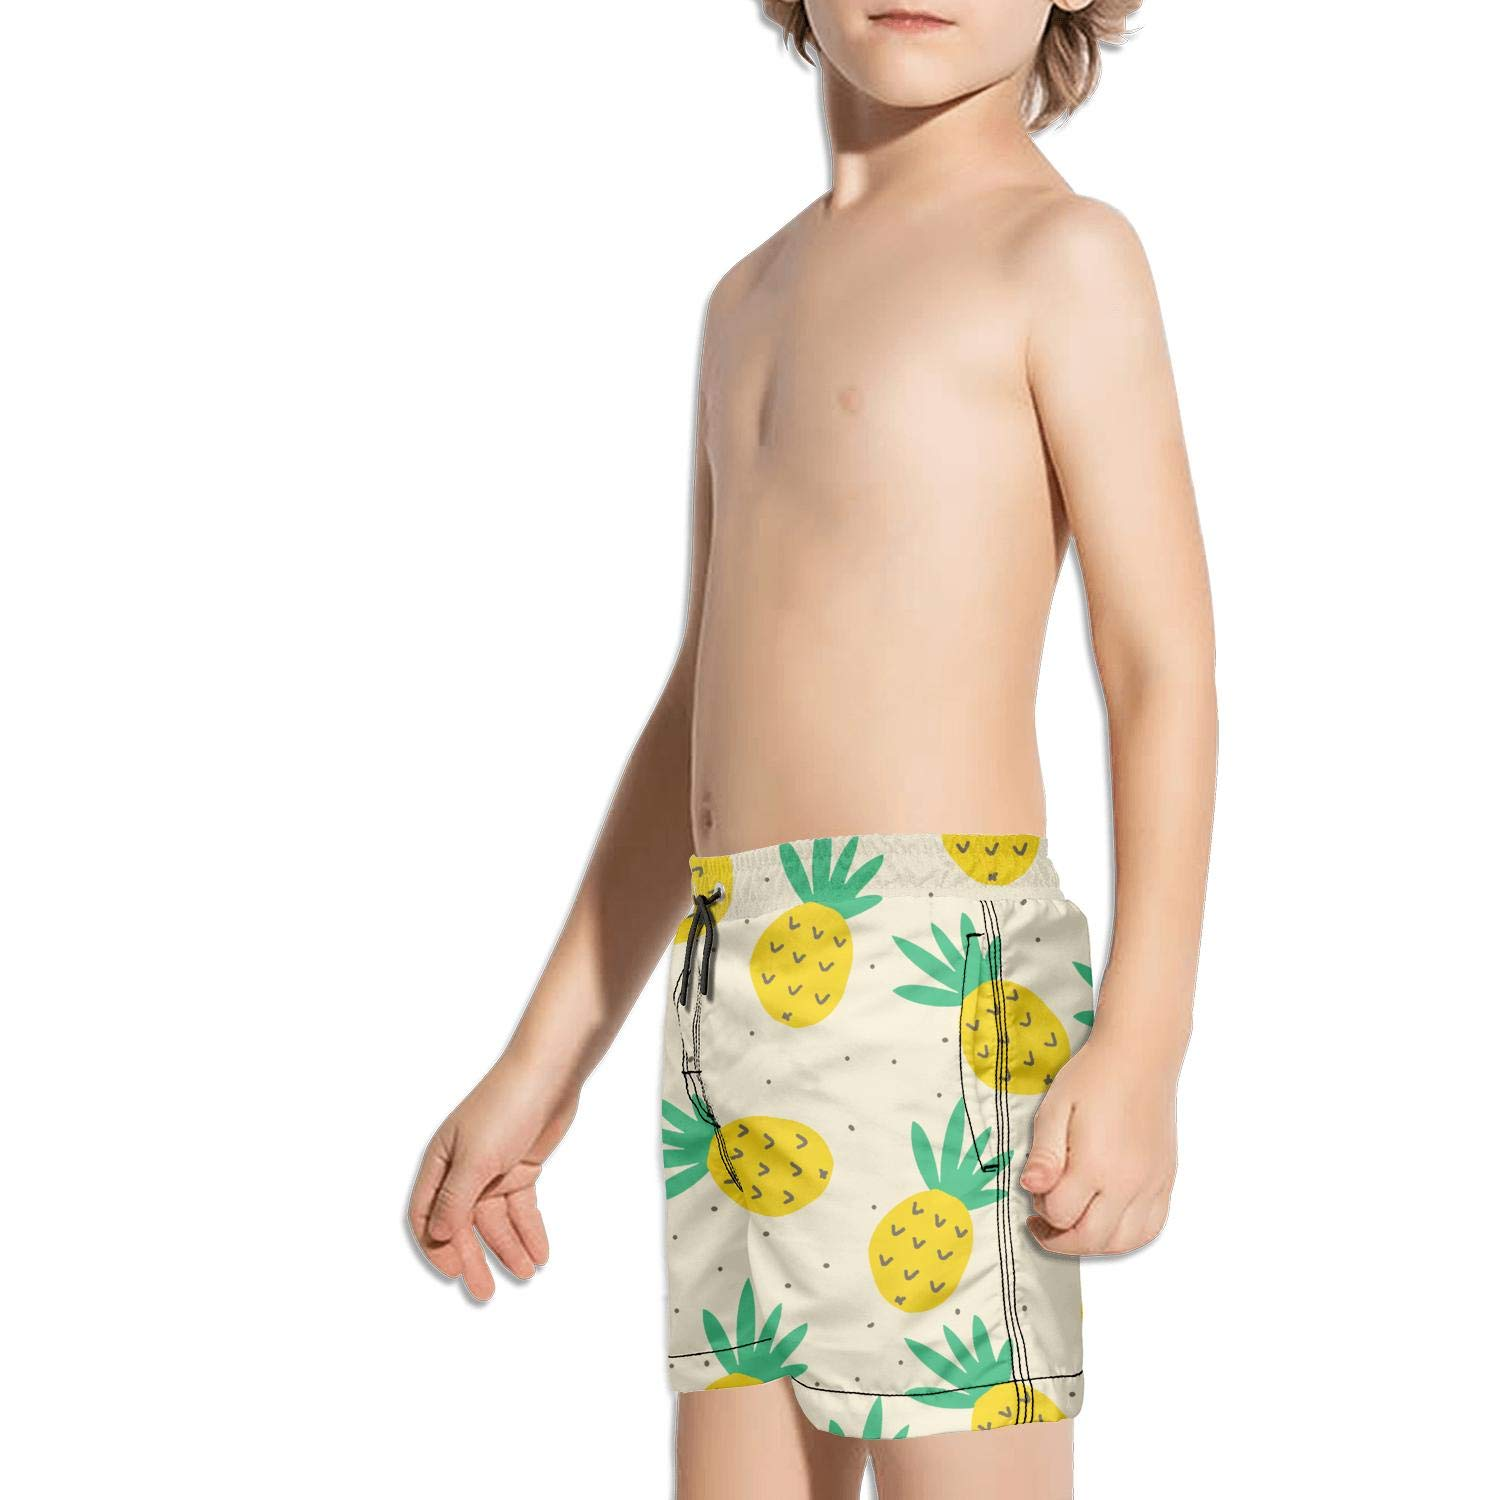 NAIT.2 Shorts Swim for Kid Quick Dry Stretch Board Fully Lined Swimming Tucks Retro Zipper ripe Pineapple Pink